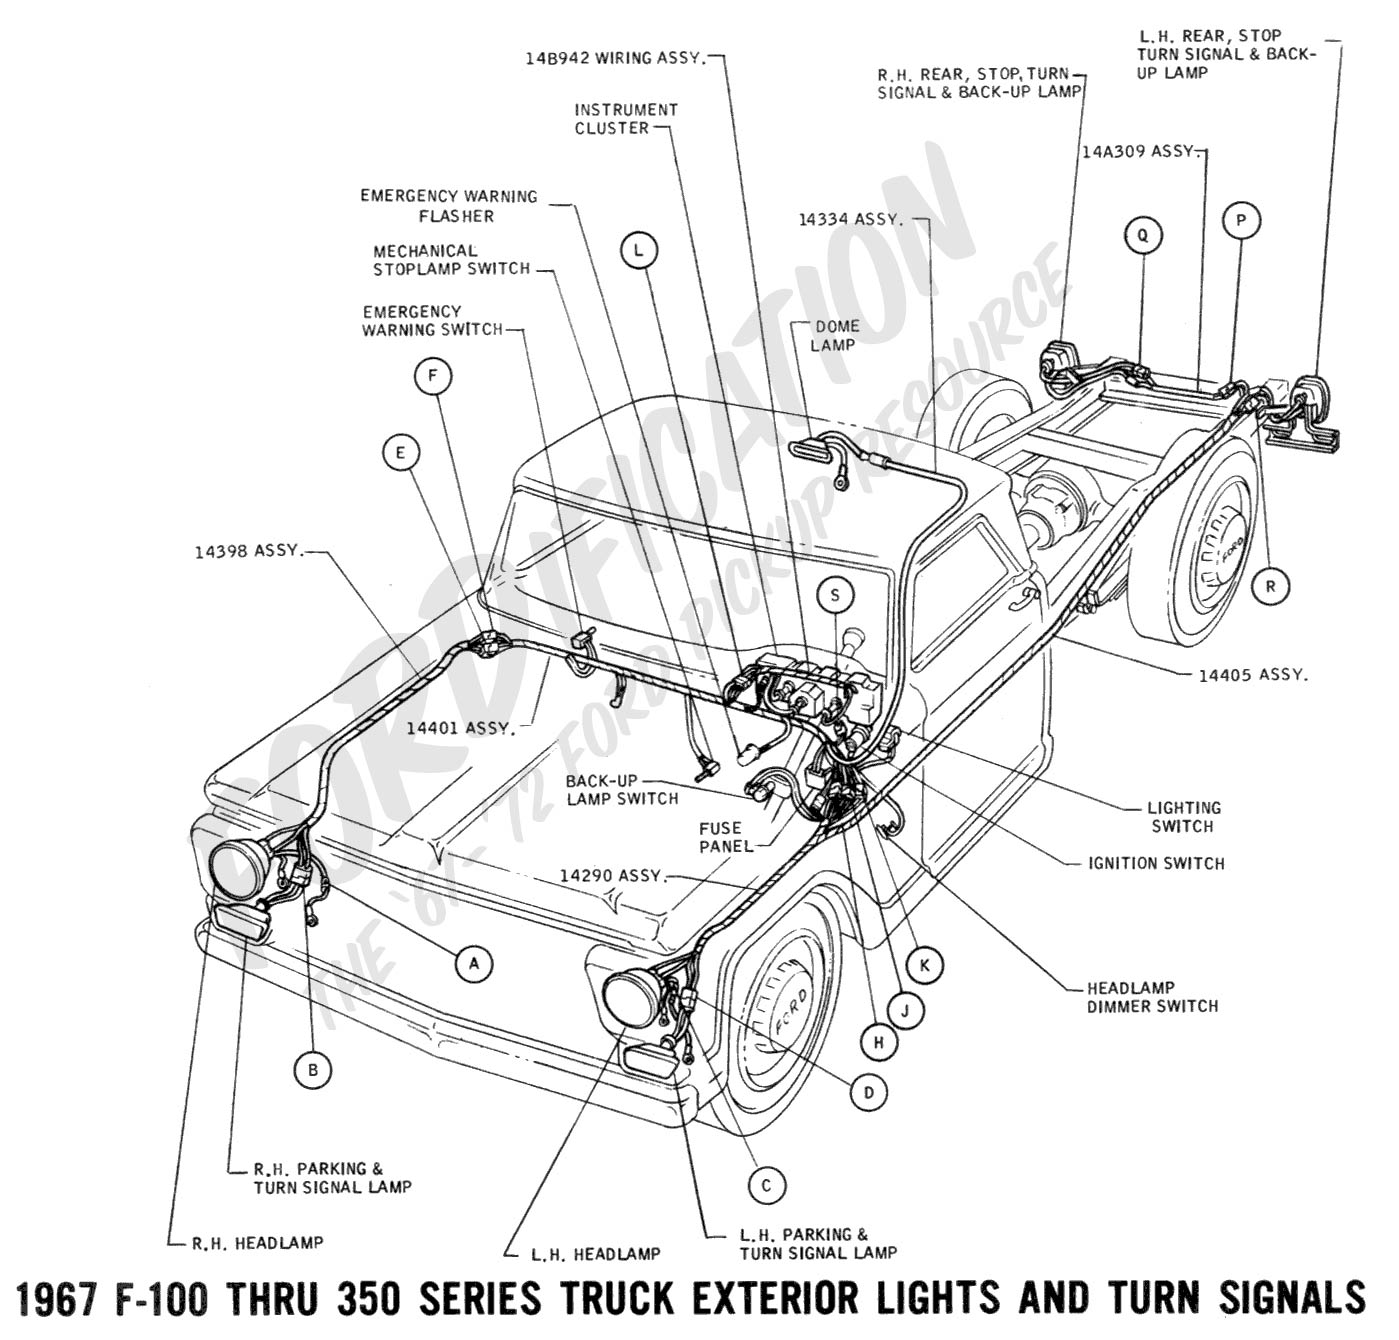 1998 Ford F 150 Wire Diagram Manual Various Owner Guide F150 Lariat I Need The Wiring For My Truck Technical Drawings And Schematics Section H Rh Fordification Com Radio 2008 Fuse Box